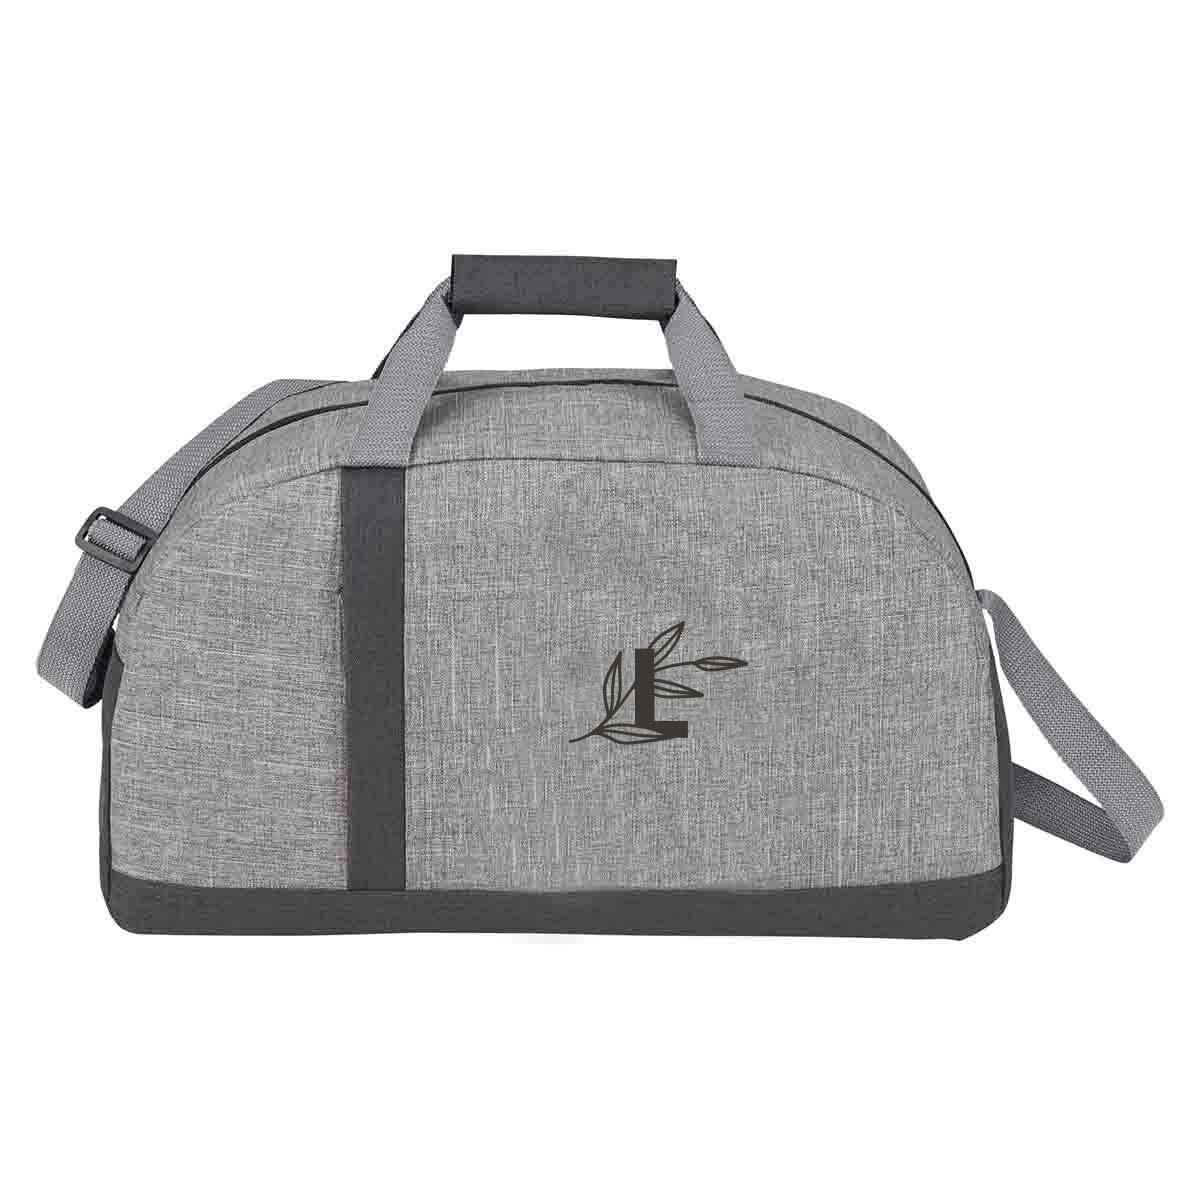 287548 merit recycled duffel three color imprint one location